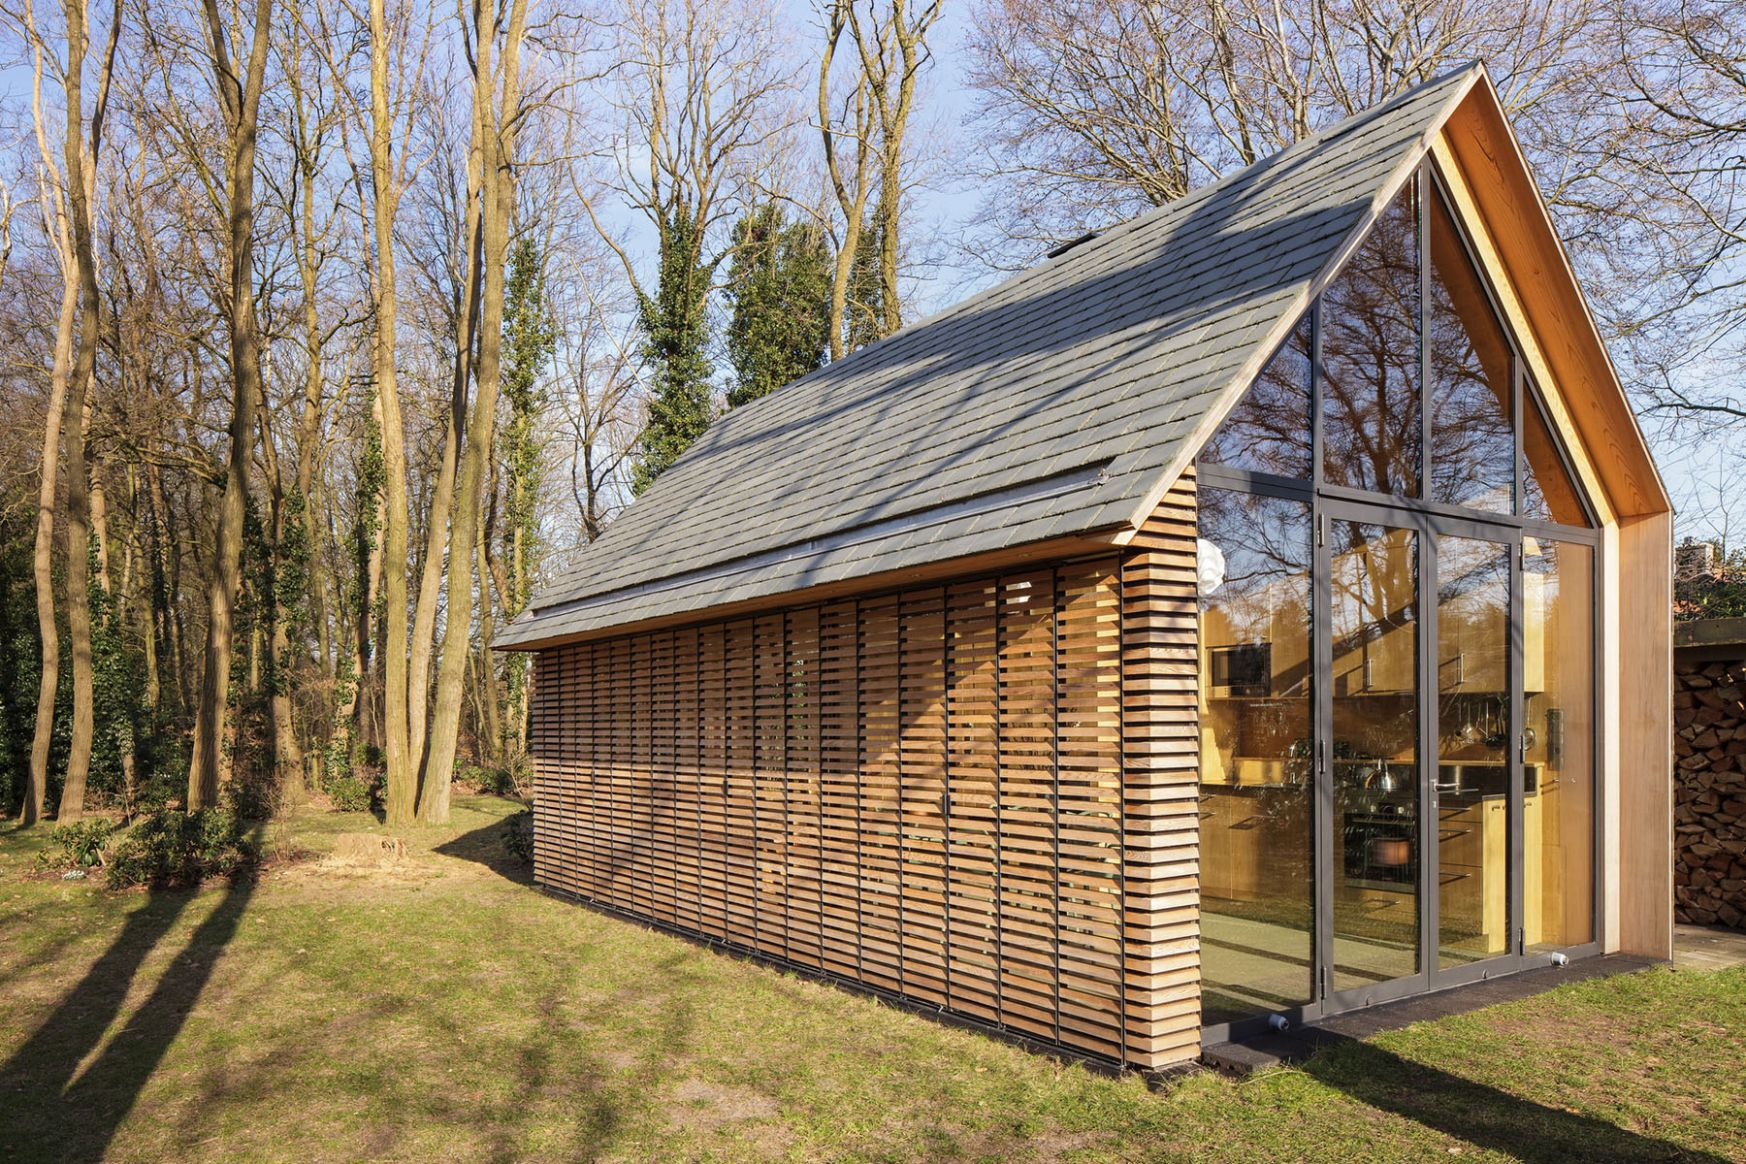 Modern Small Country Cottage With Wooden Shutters In The ..